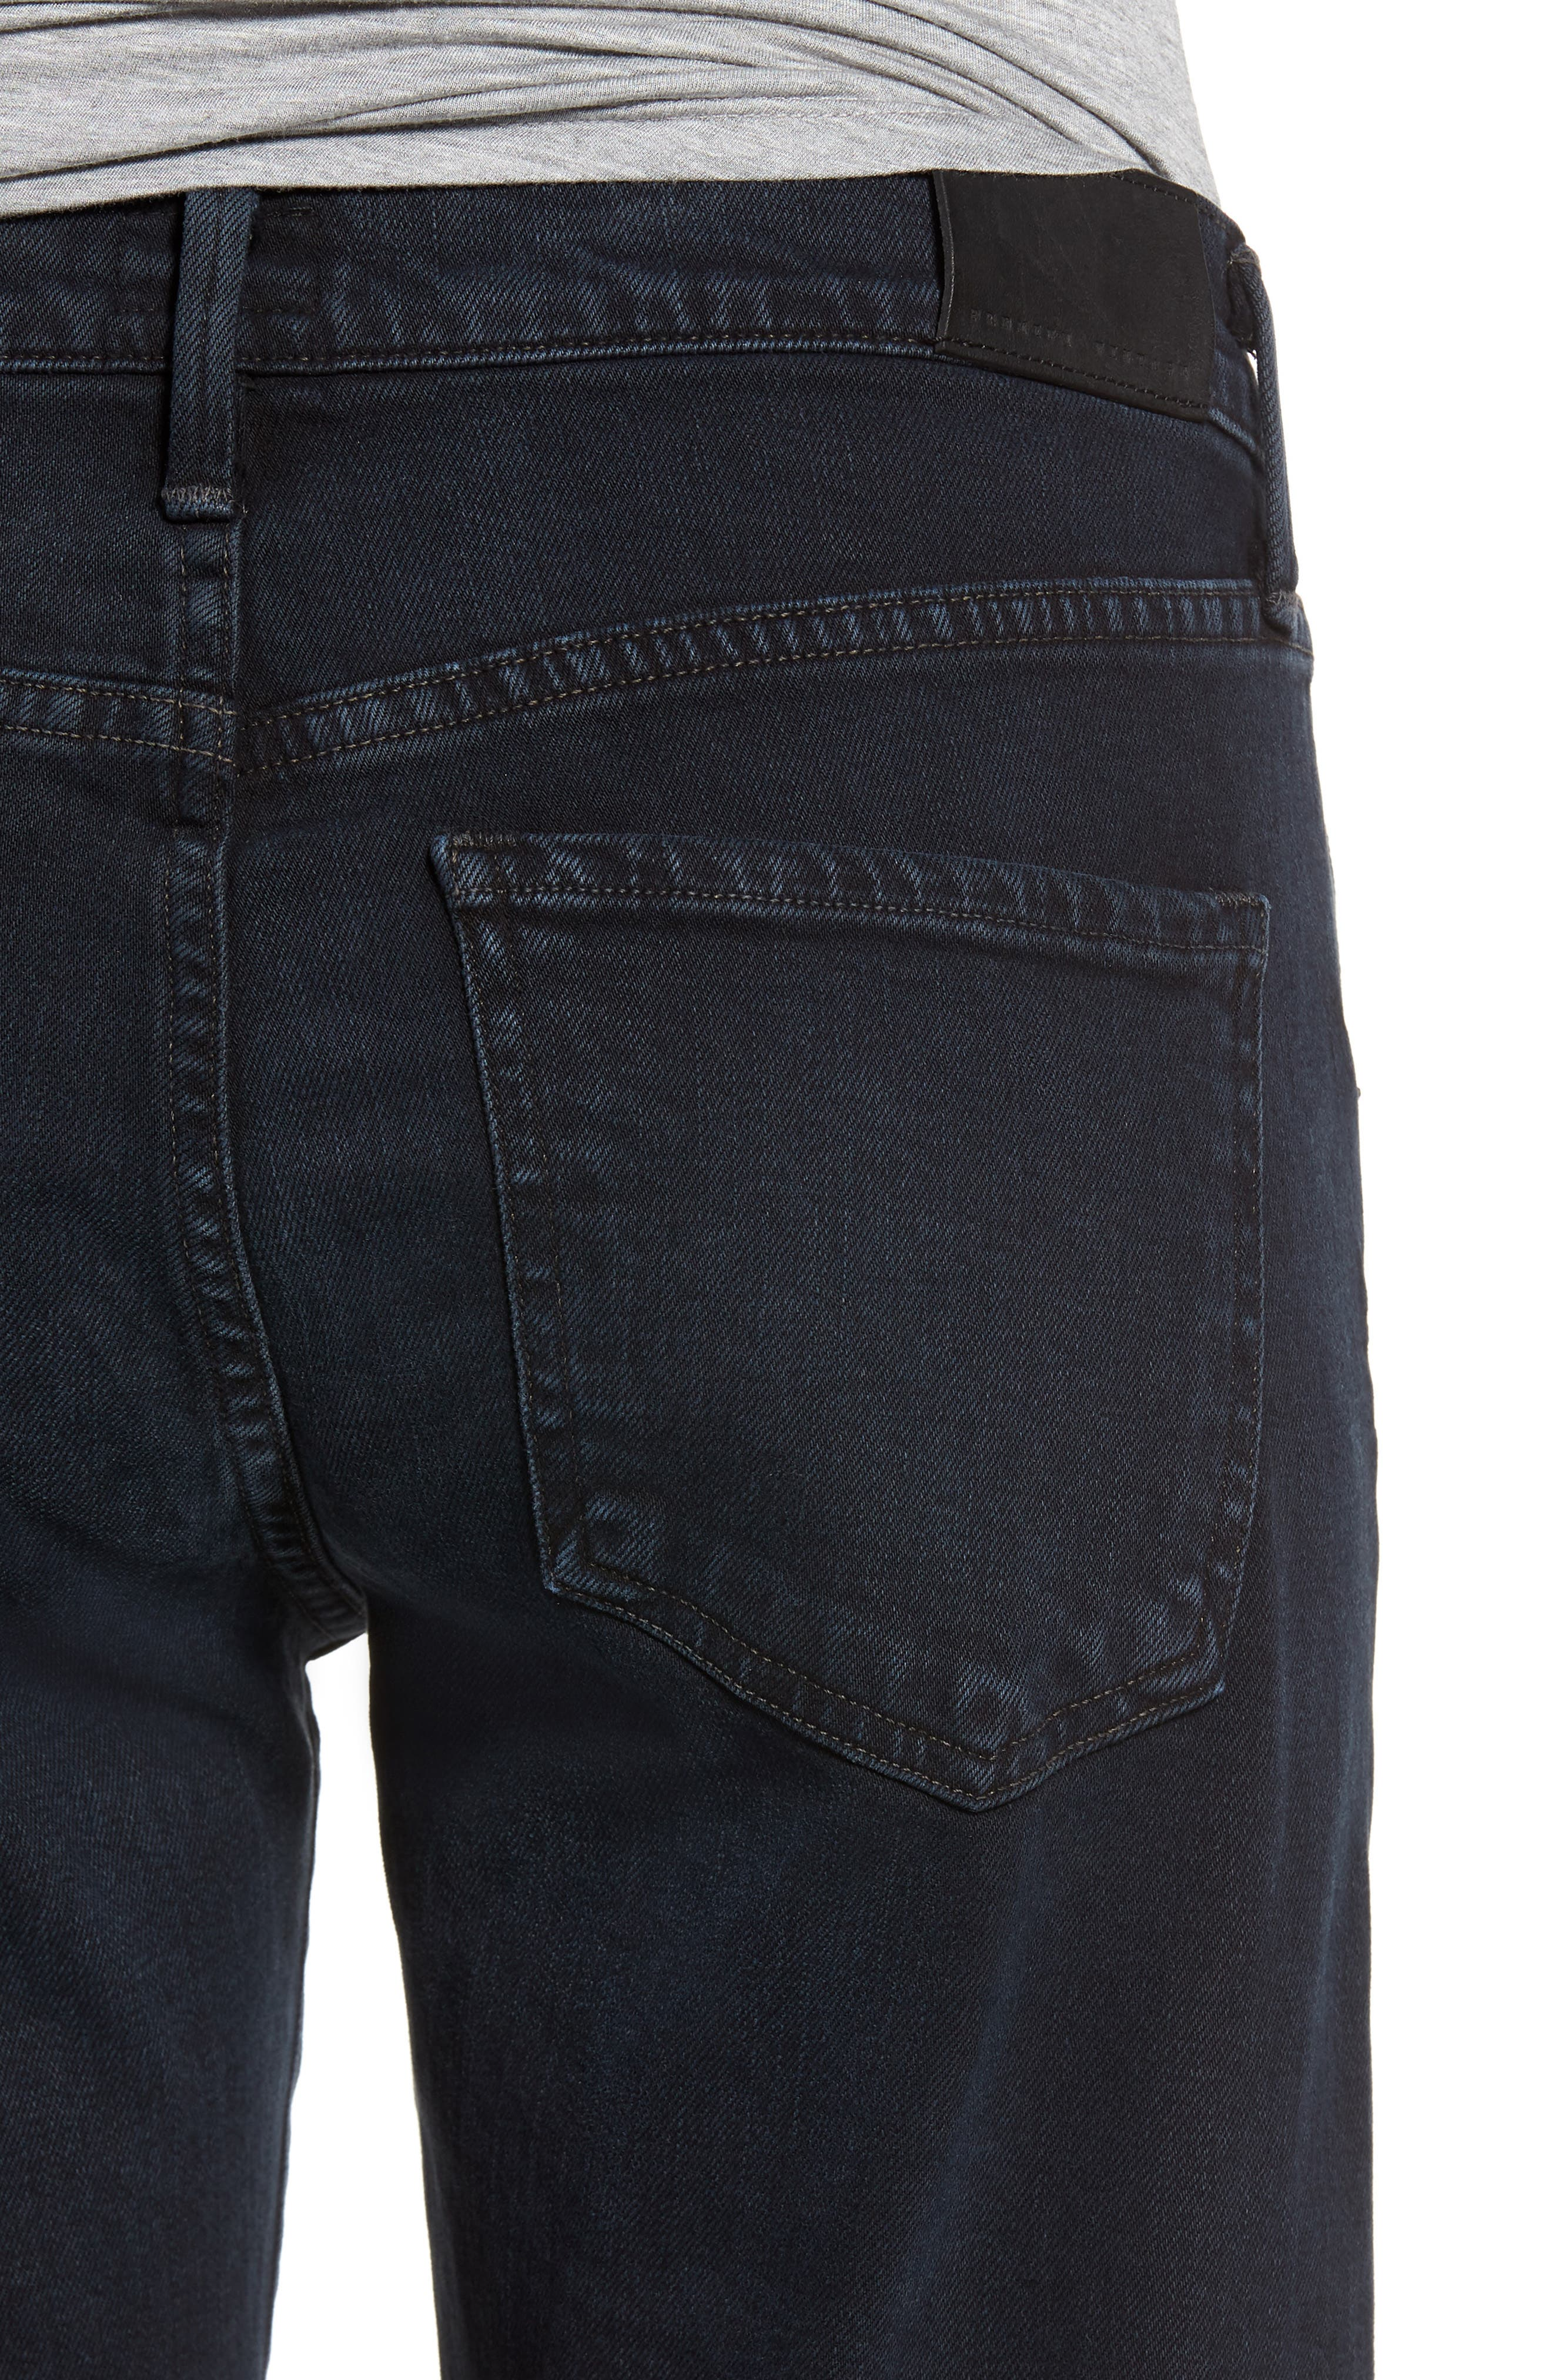 CITIZENS OF HUMANITY, Emerson Slim Boyfriend Jeans, Alternate thumbnail 5, color, NIGHT SHADE